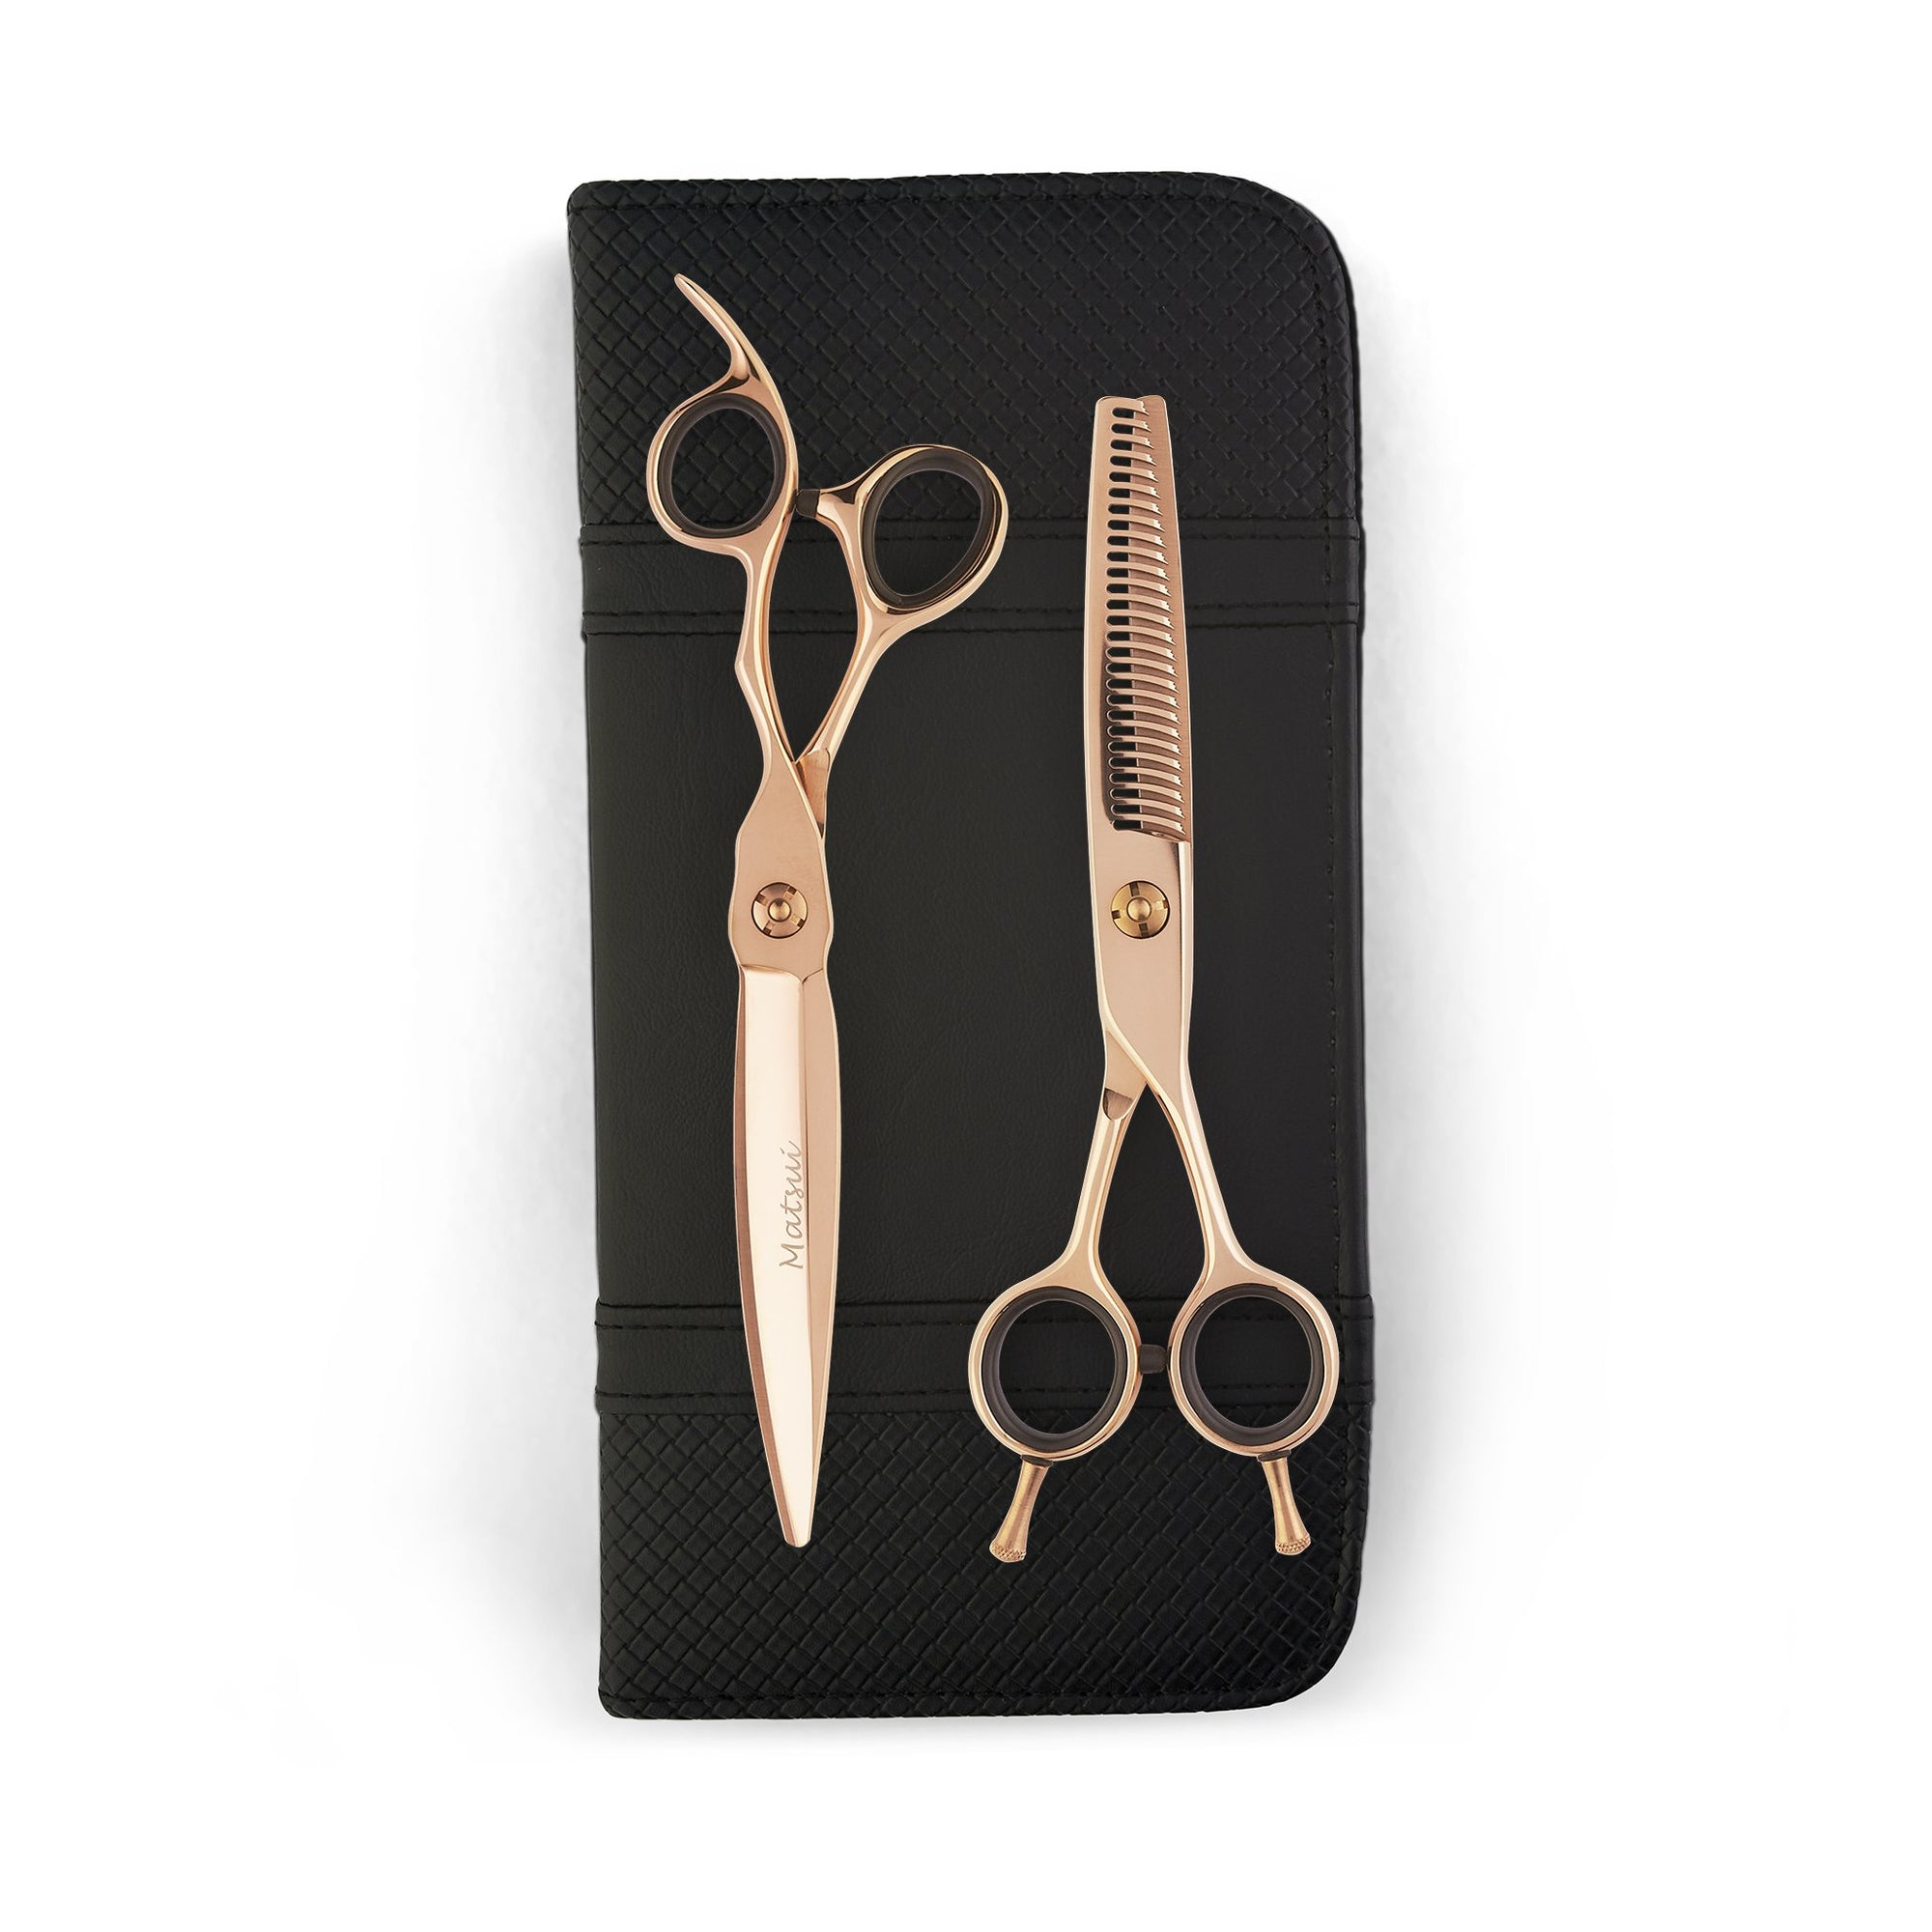 Matsui VG10 Sword Scissor Thinner Combo - Rose Gold (4682461544531)